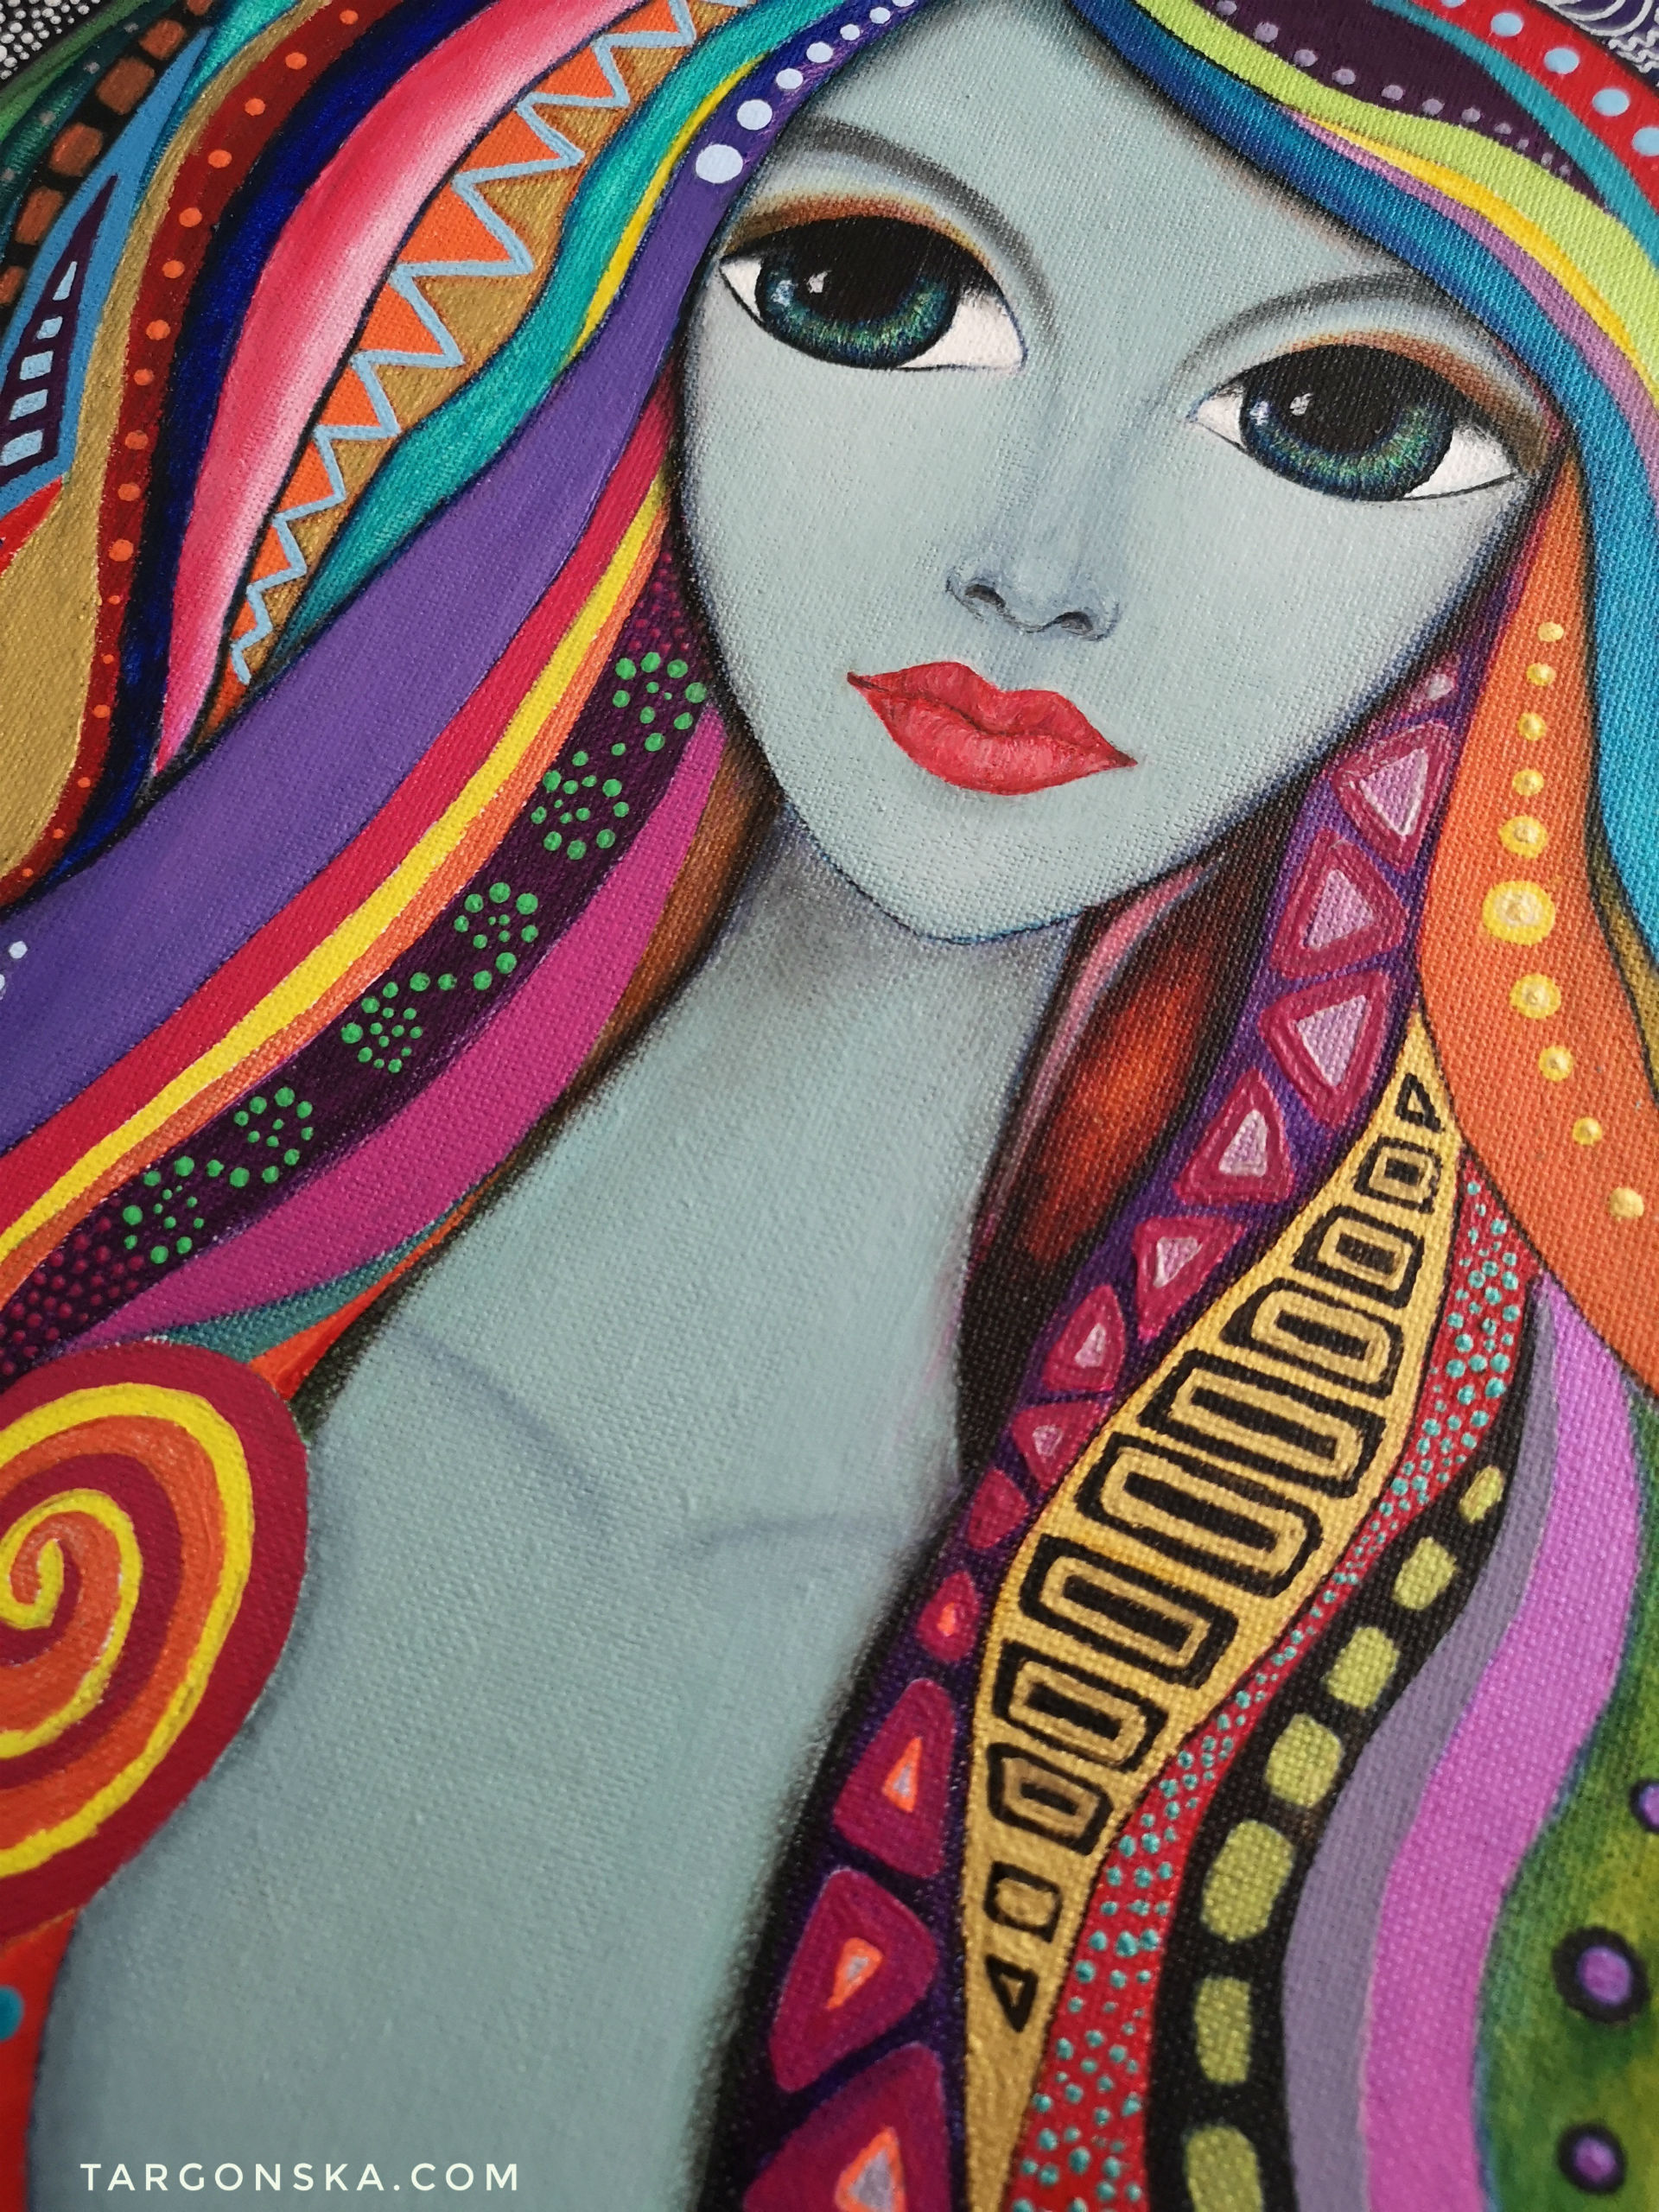 Malgorzata Targonska - Colorful Lady